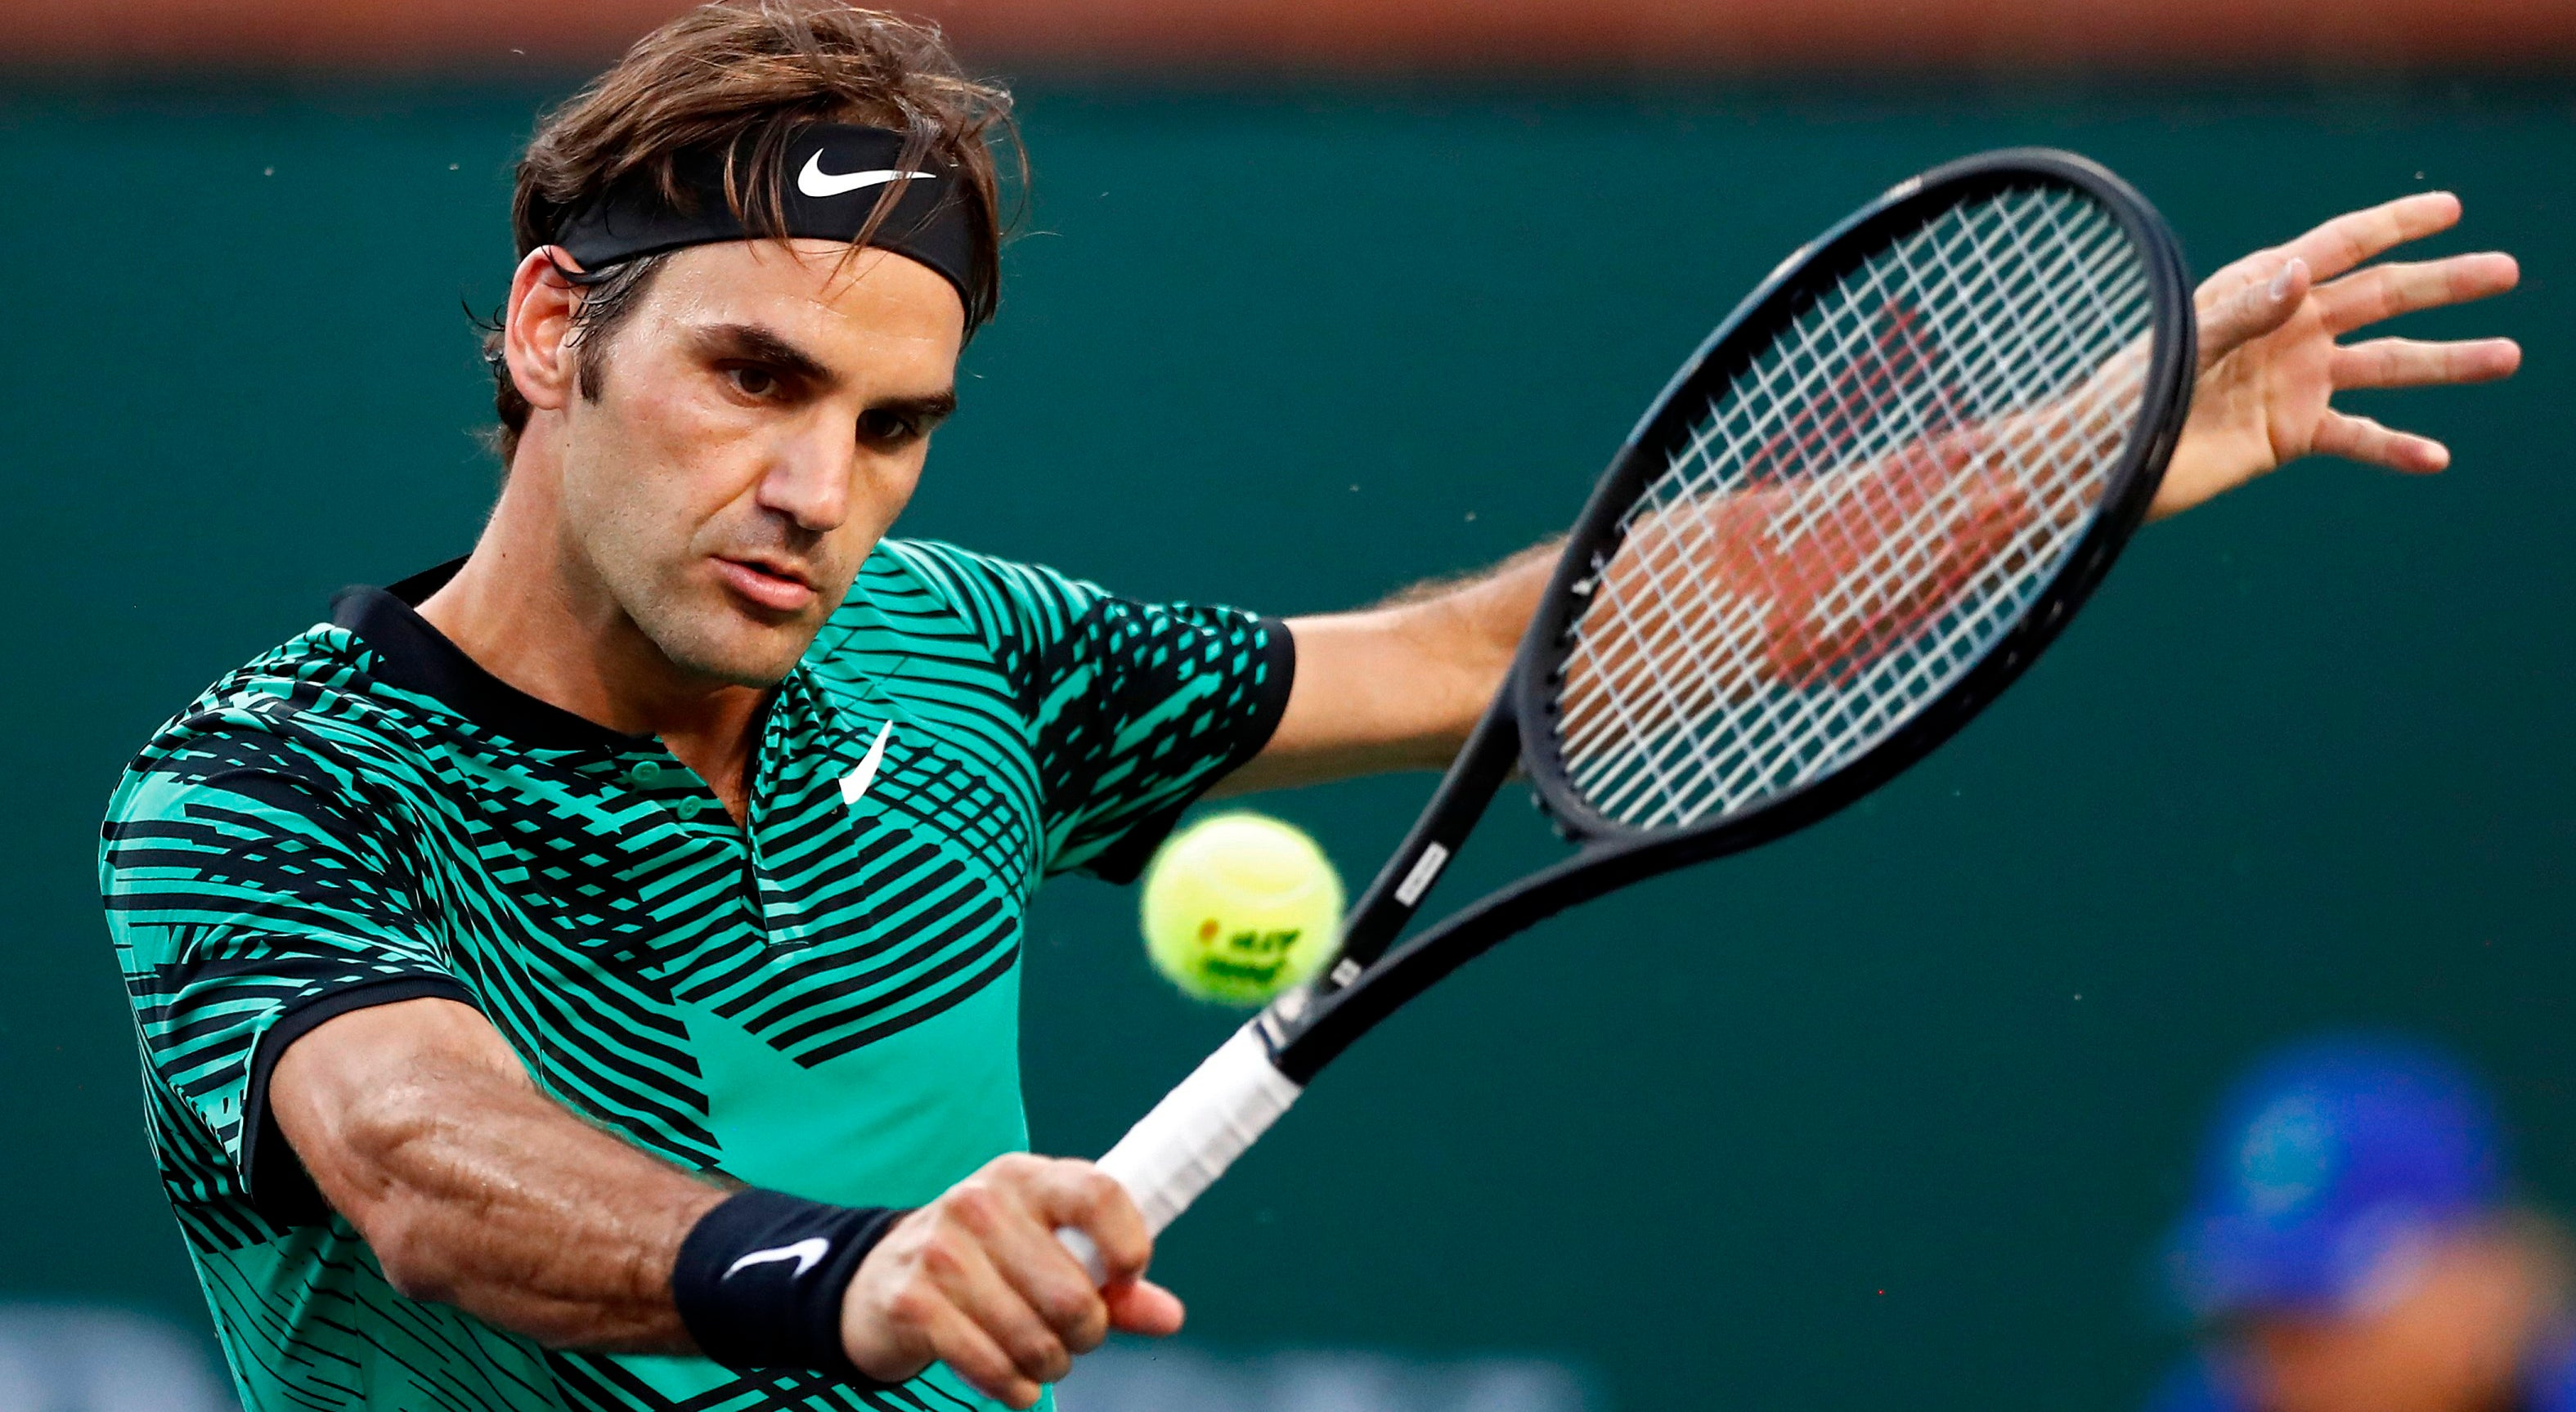 Federer elimina Nadal no torneio de  Indian Wells